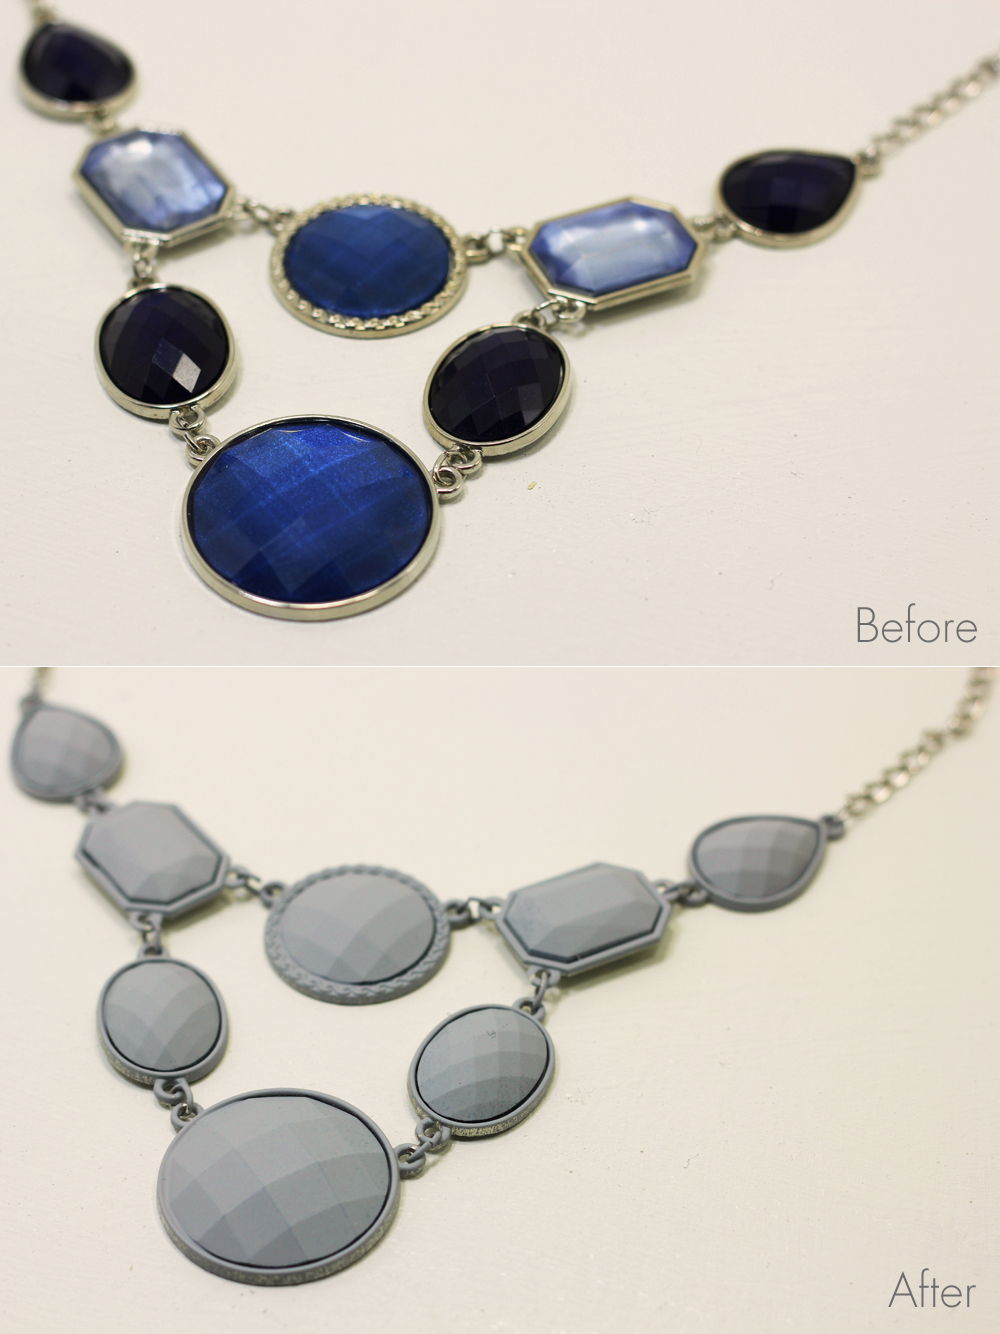 spray-painted-necklace-before-and-after